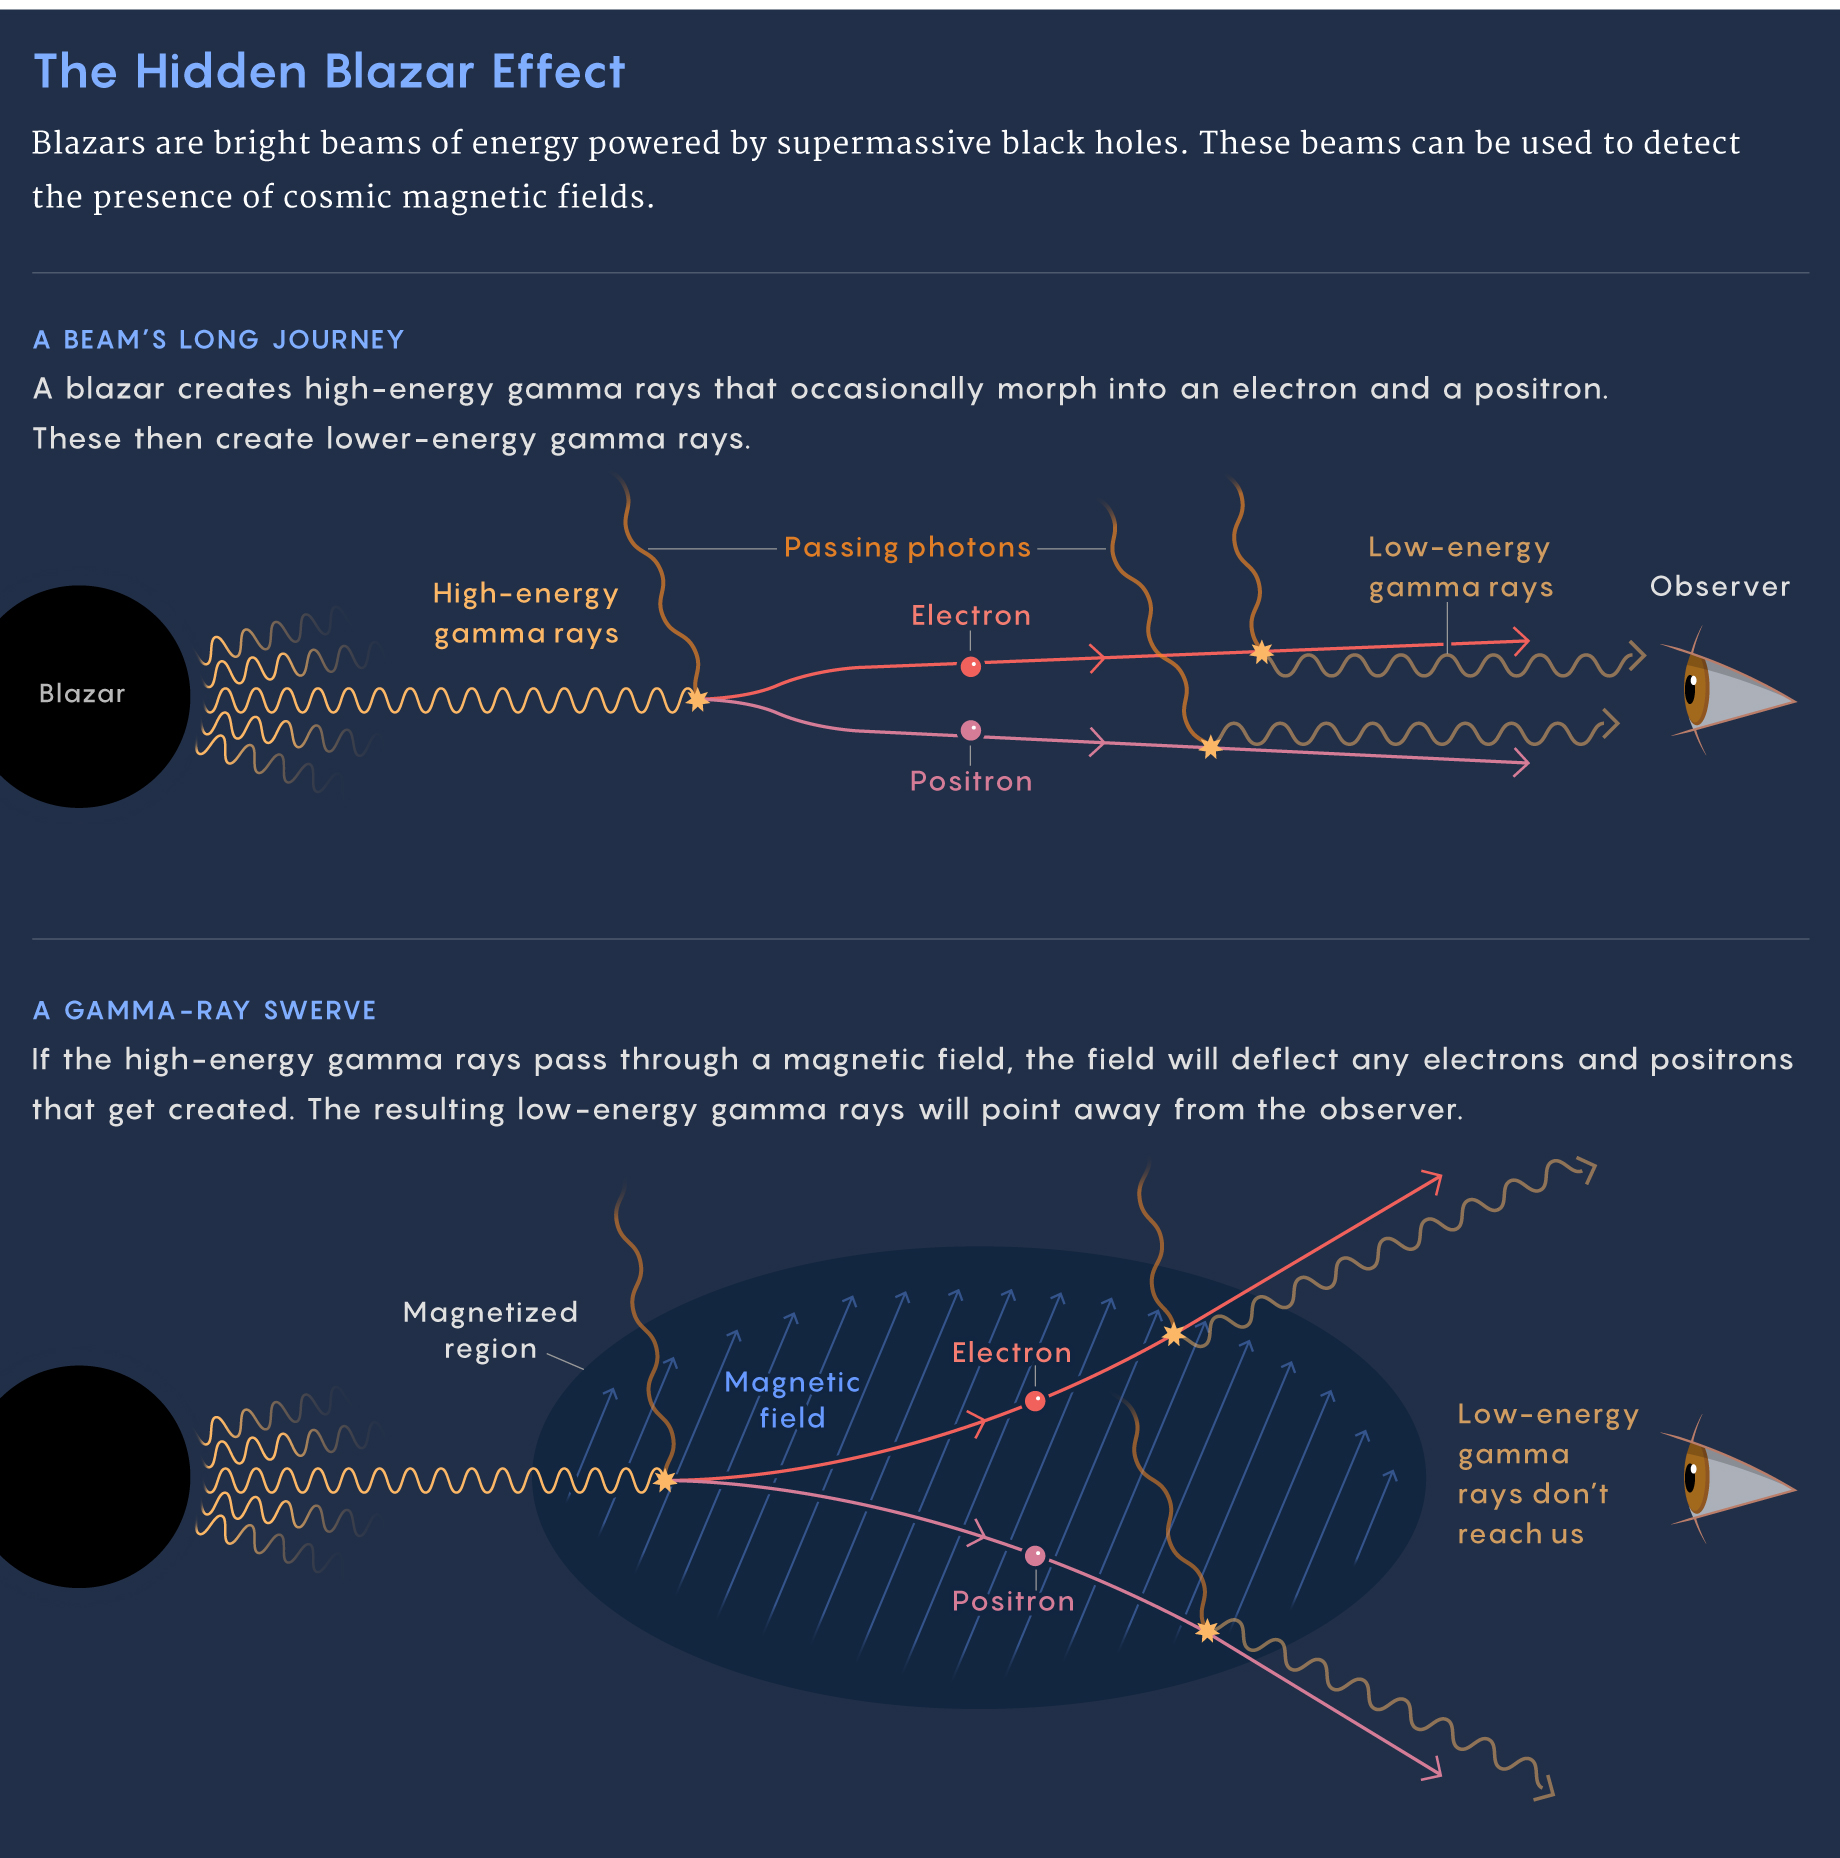 How blazars can be used to detect a magnetic field.